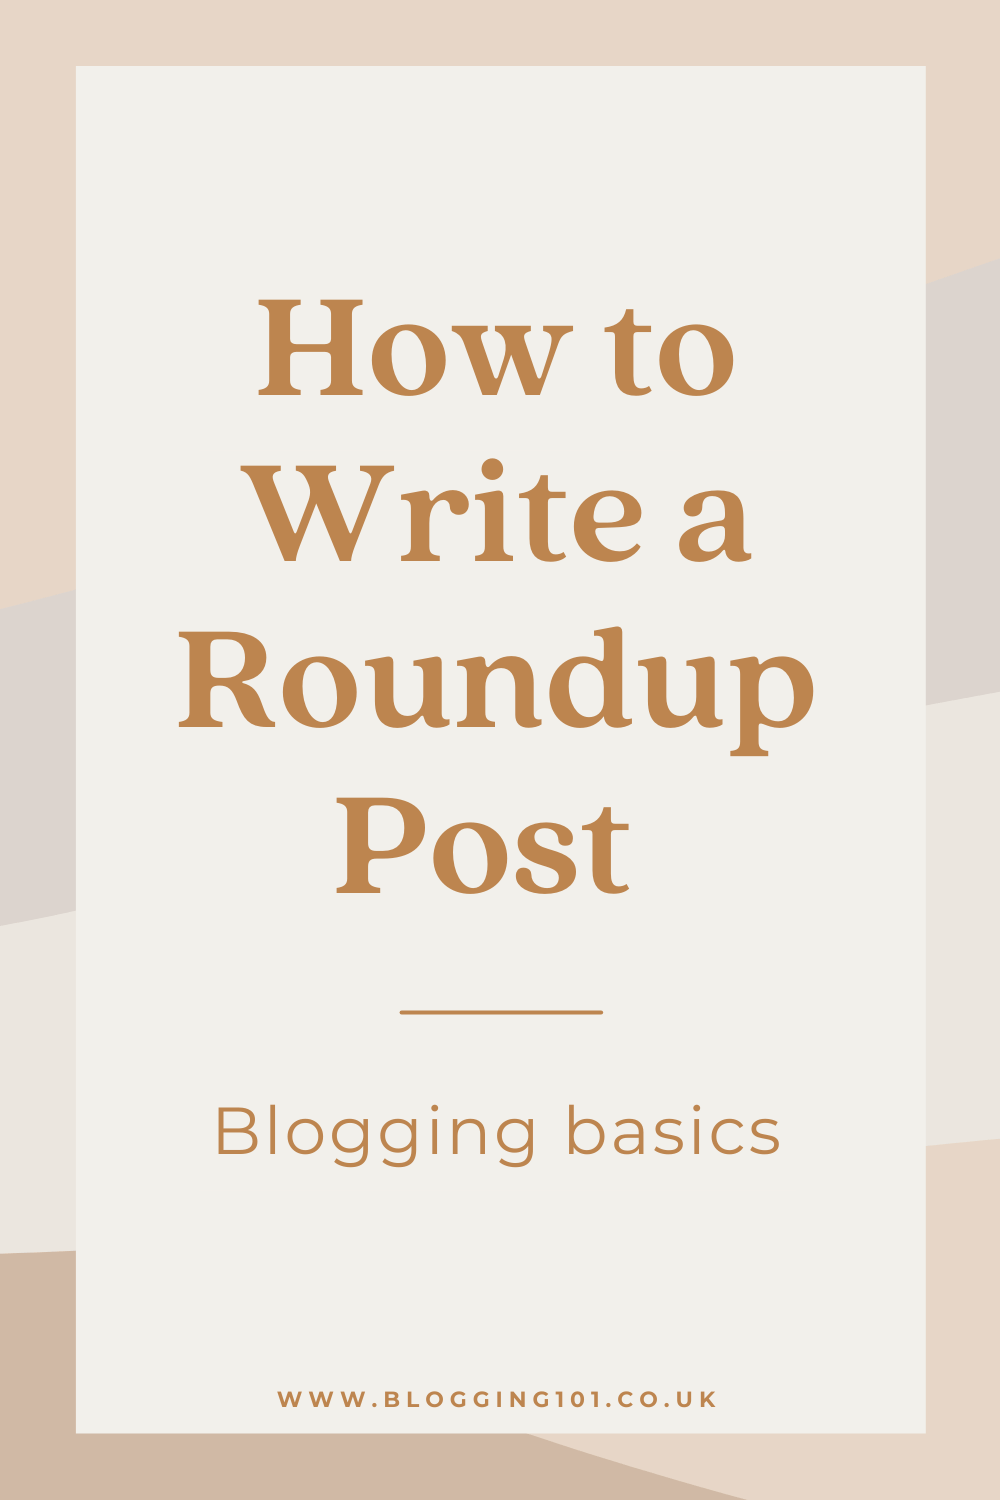 How to Write a Roundup Post - blogging basics